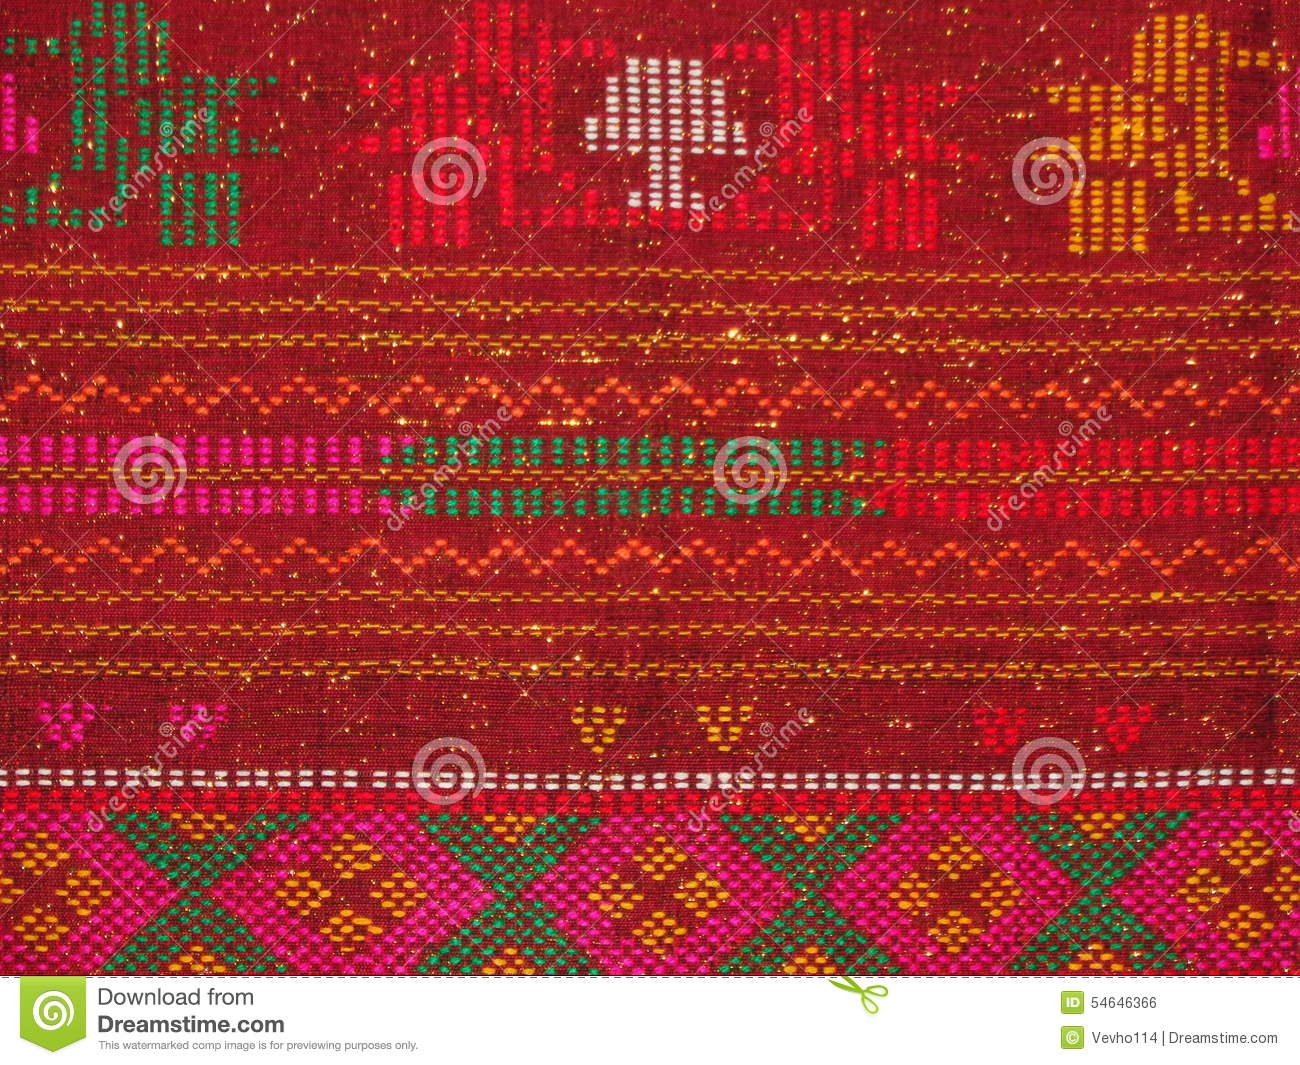 https://thumbs.dreamstime.com/z/traditional-cloth-called-ulos-batak-colorful-abstract-motif-tribe-north-sumatera-indonesia-54646366.jpg